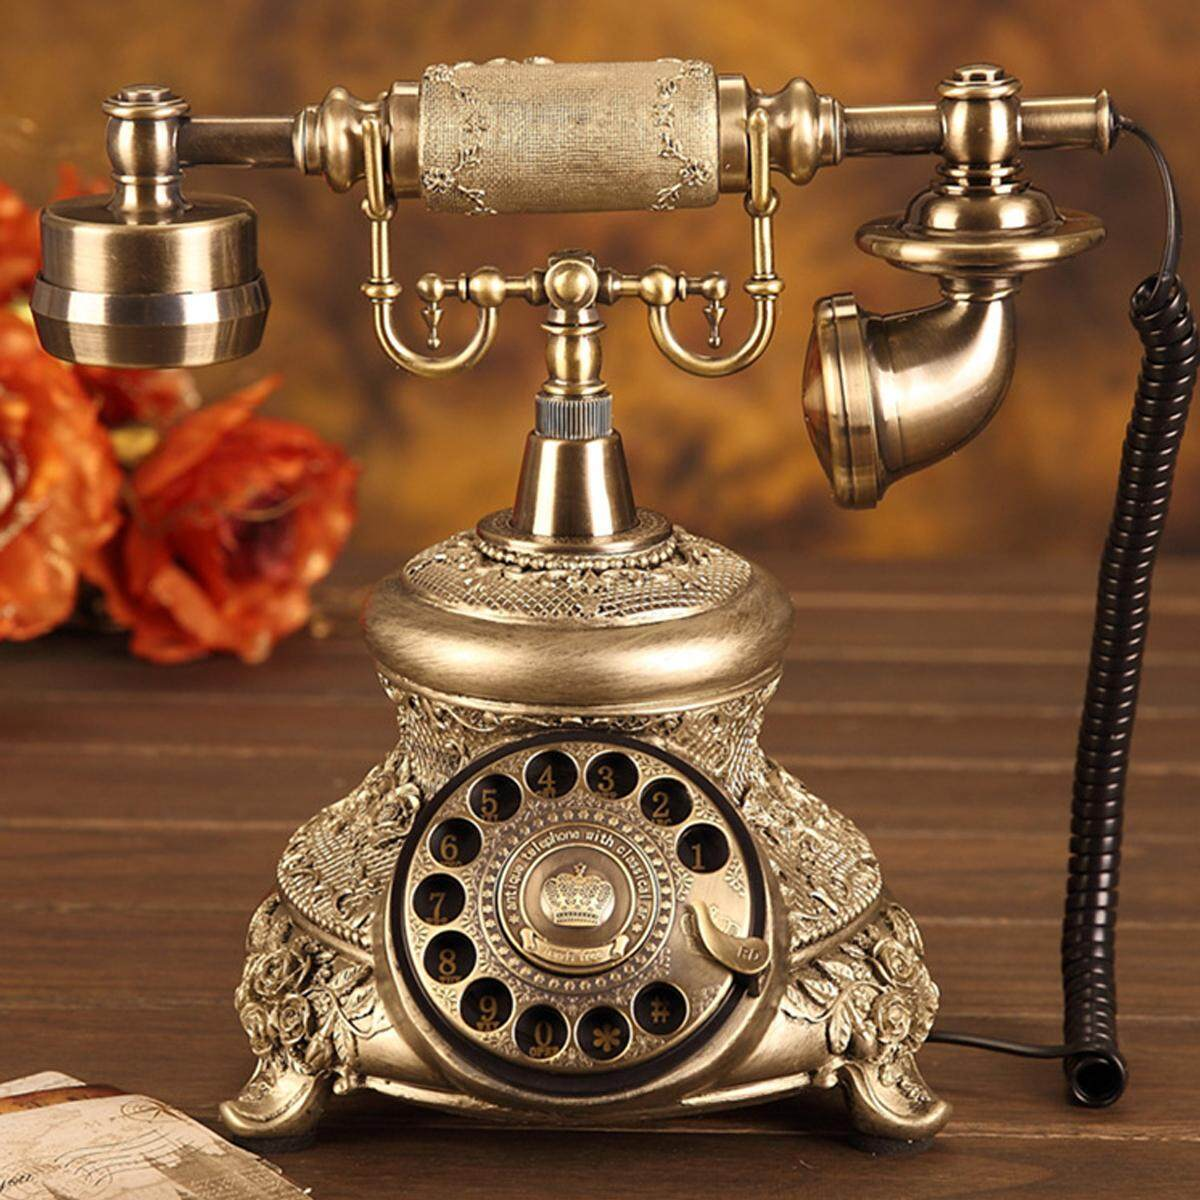 Old fashioned wall mounted telephones 50